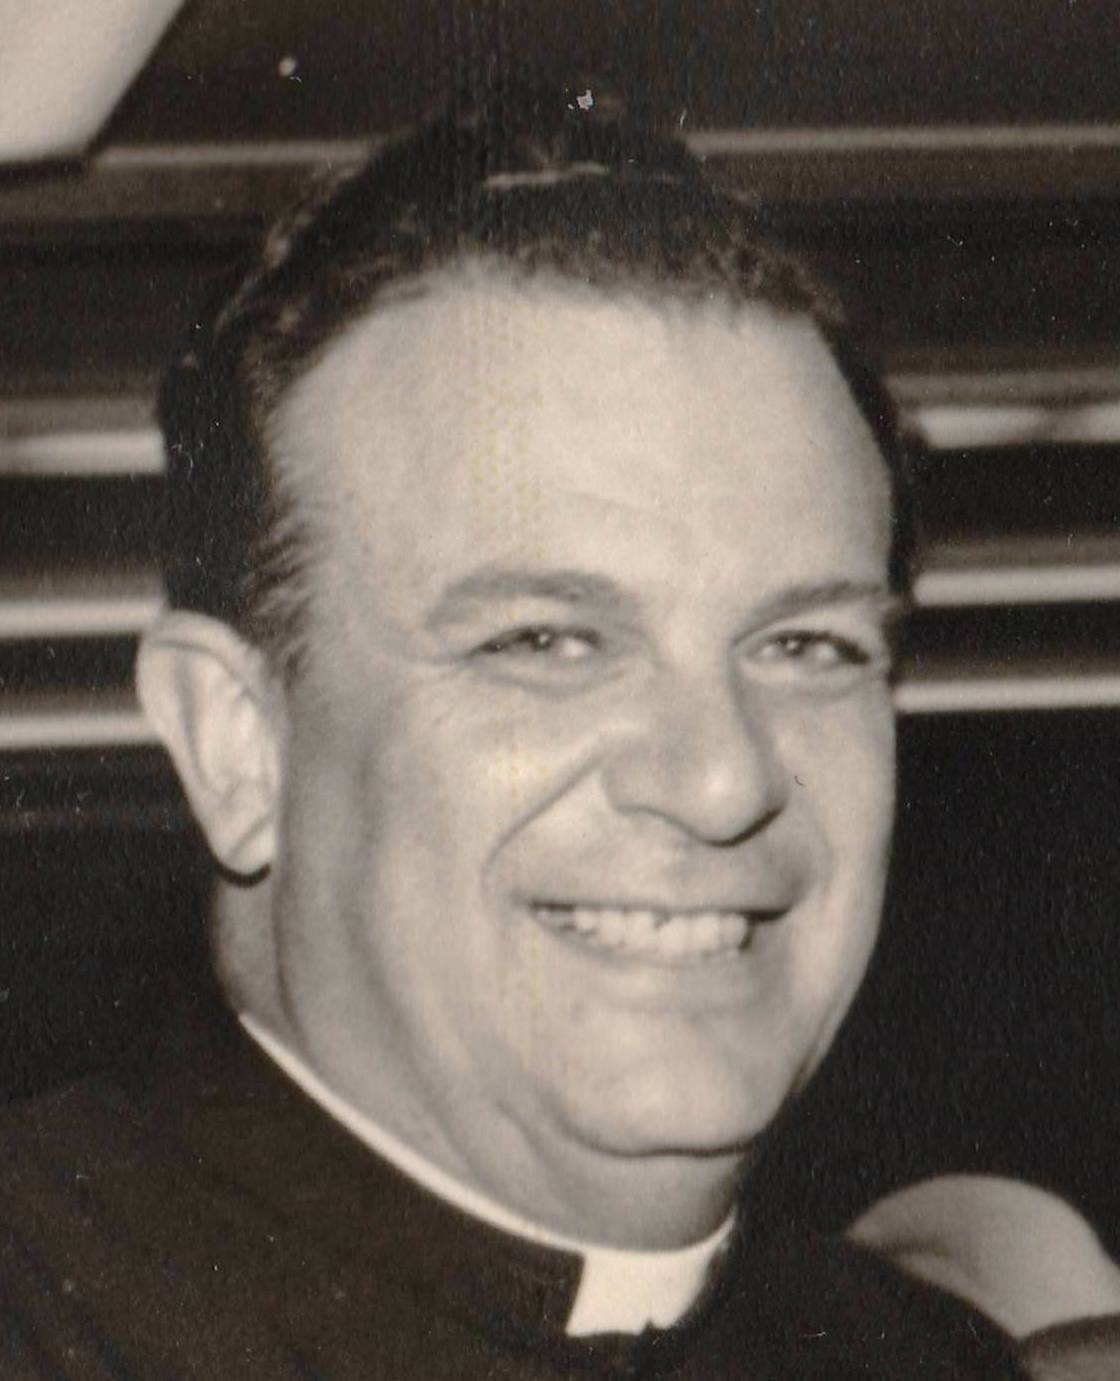 Fr. Robert Syrianey, the first Pastor of Our Lady of Fatima Parish